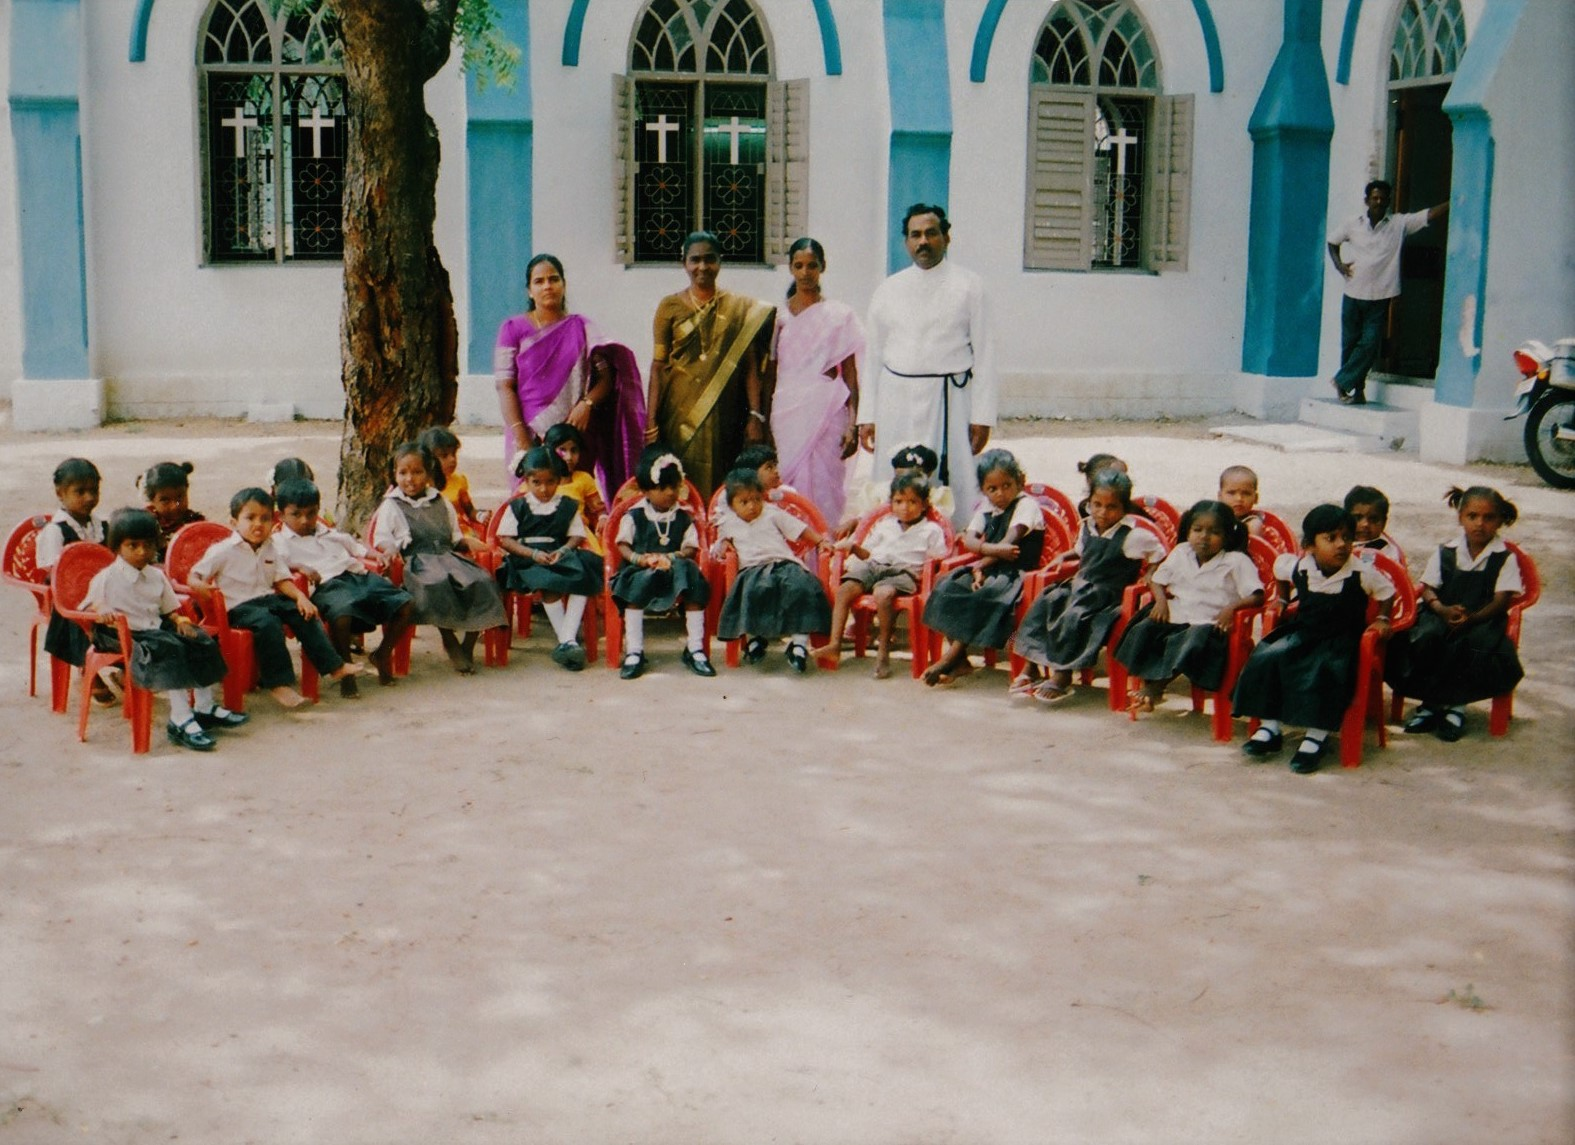 The Chennai Colony Preschool children are sitting in the chairs in India.